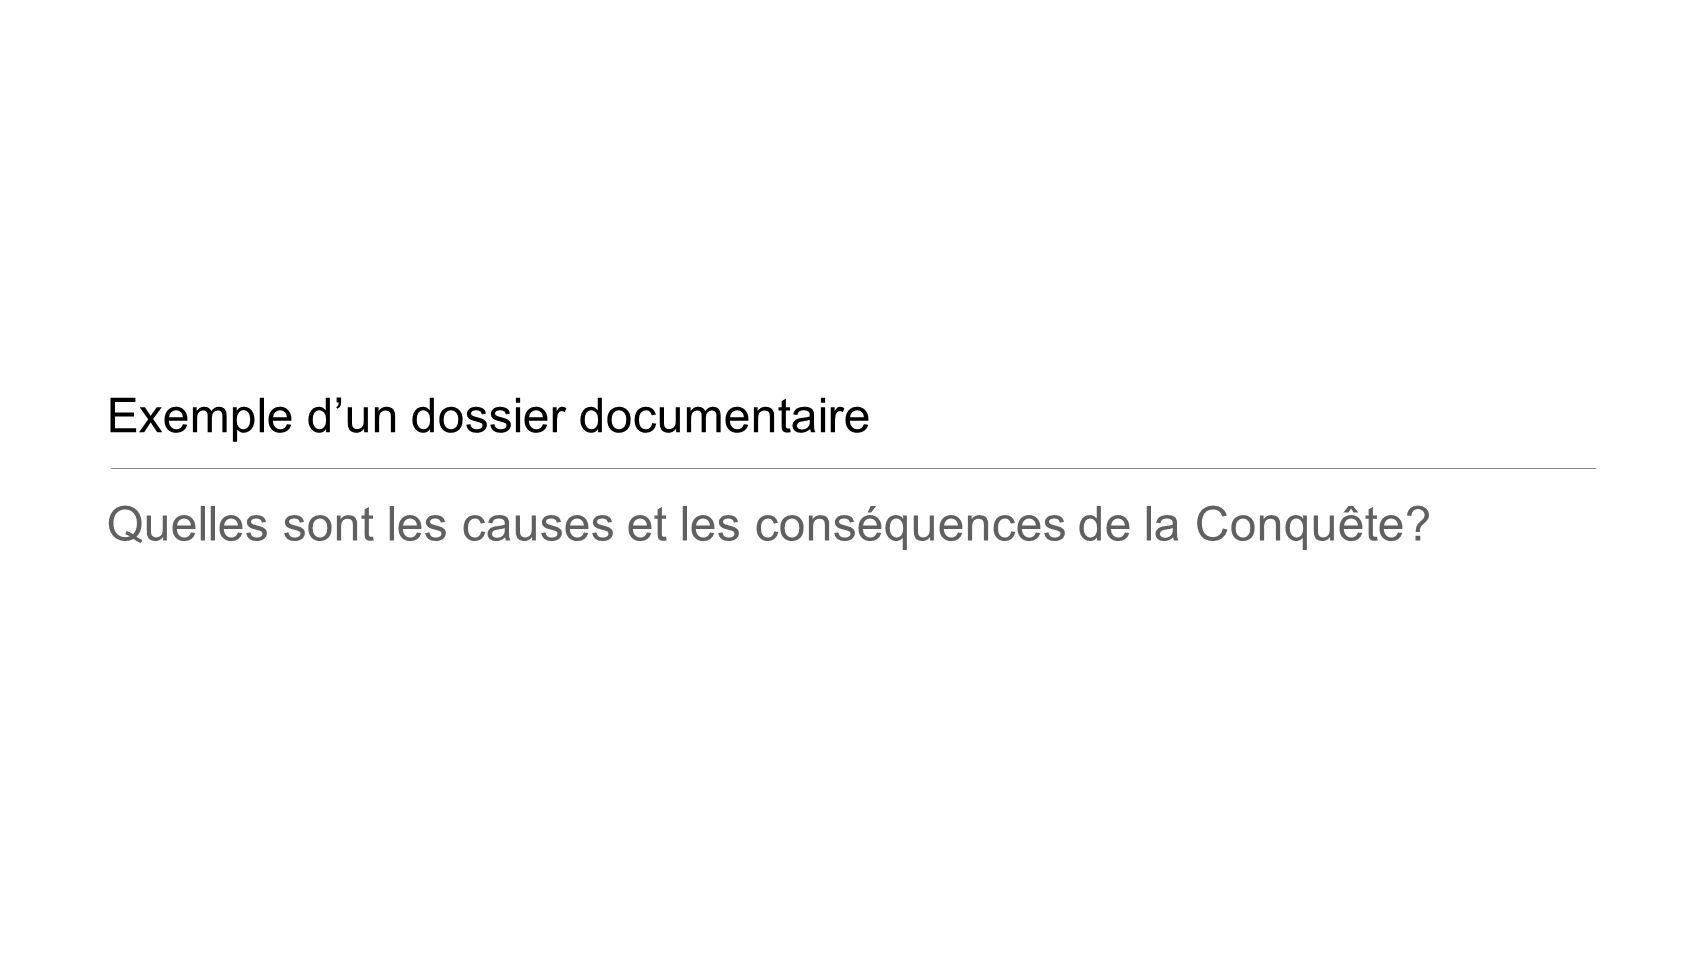 Exemple d'un dossier documentaire